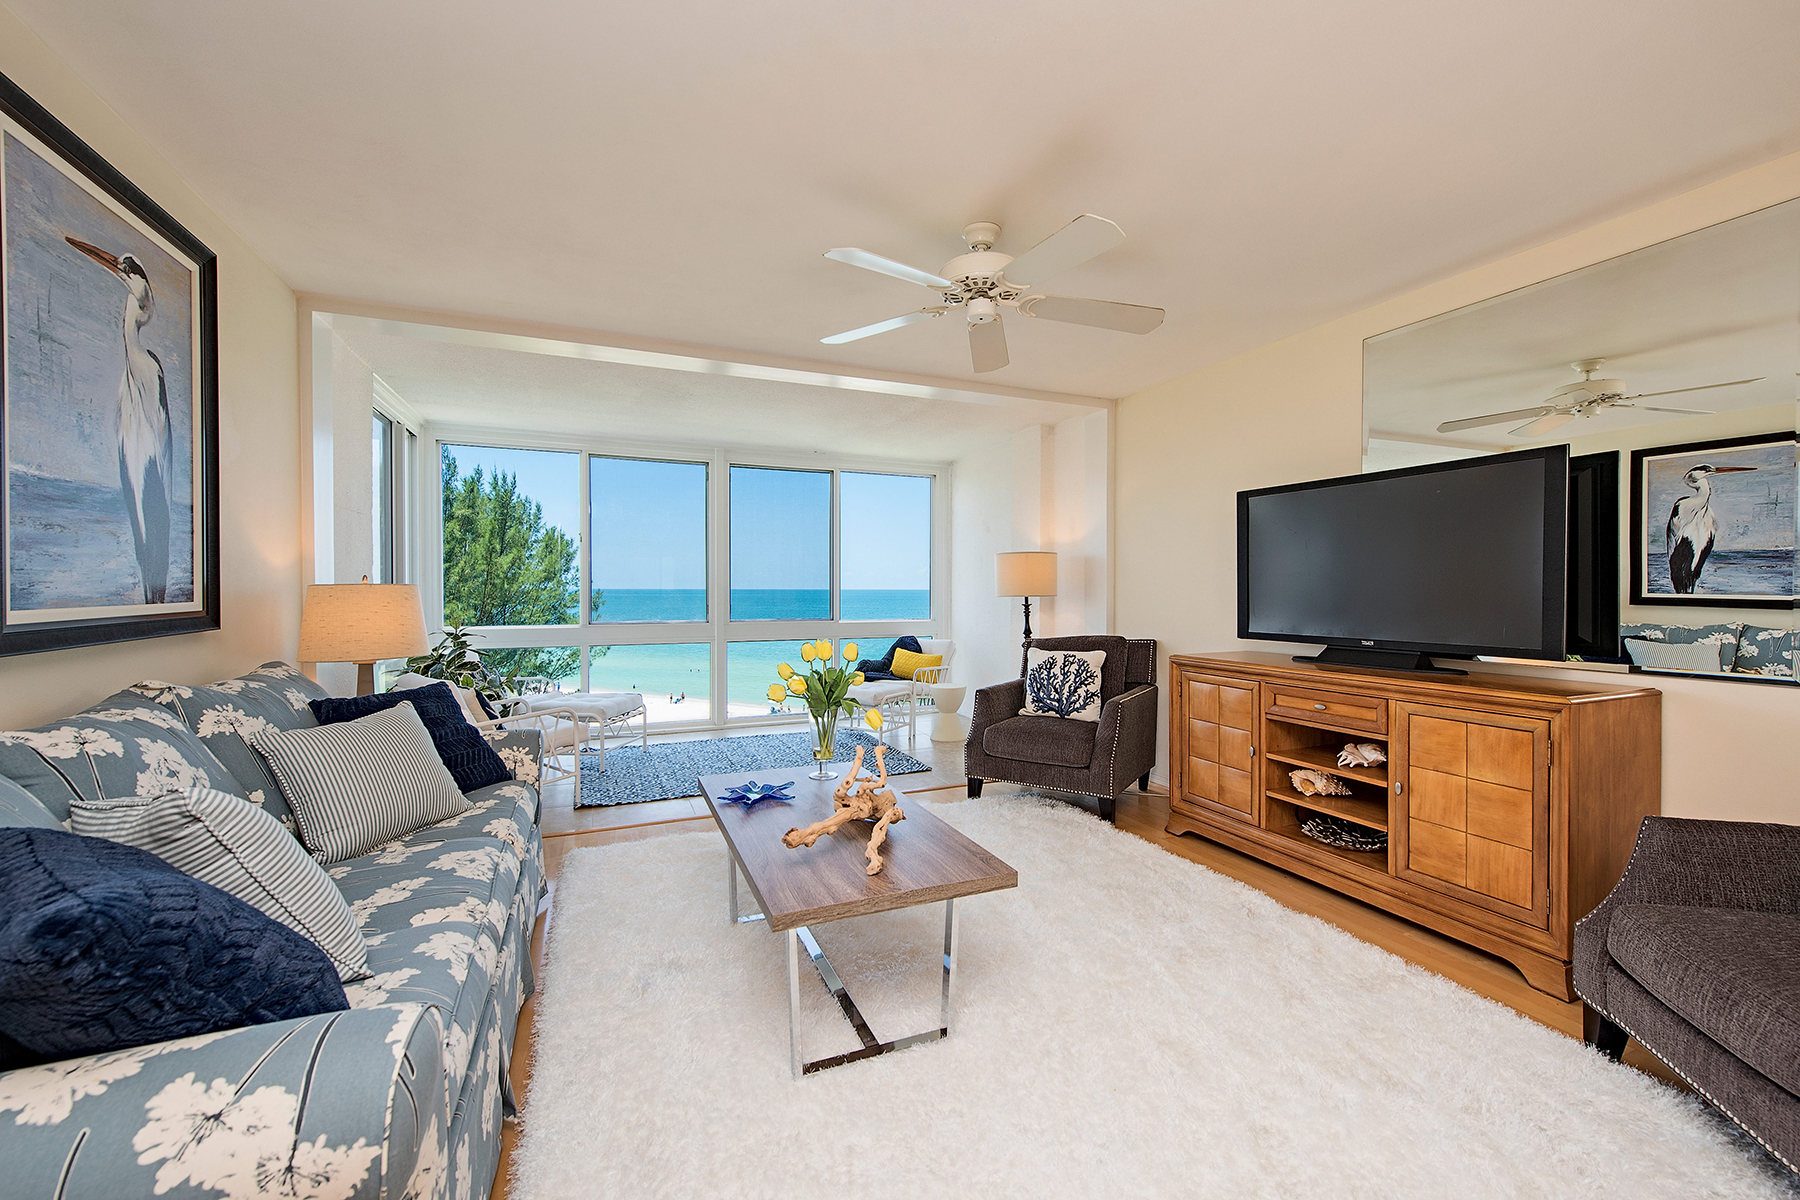 Condominium for Sale at MOORINGS - ROYAL PALM CLUB 2121 Gulf Shore Blvd N 507, Naples, Florida 34102 United States